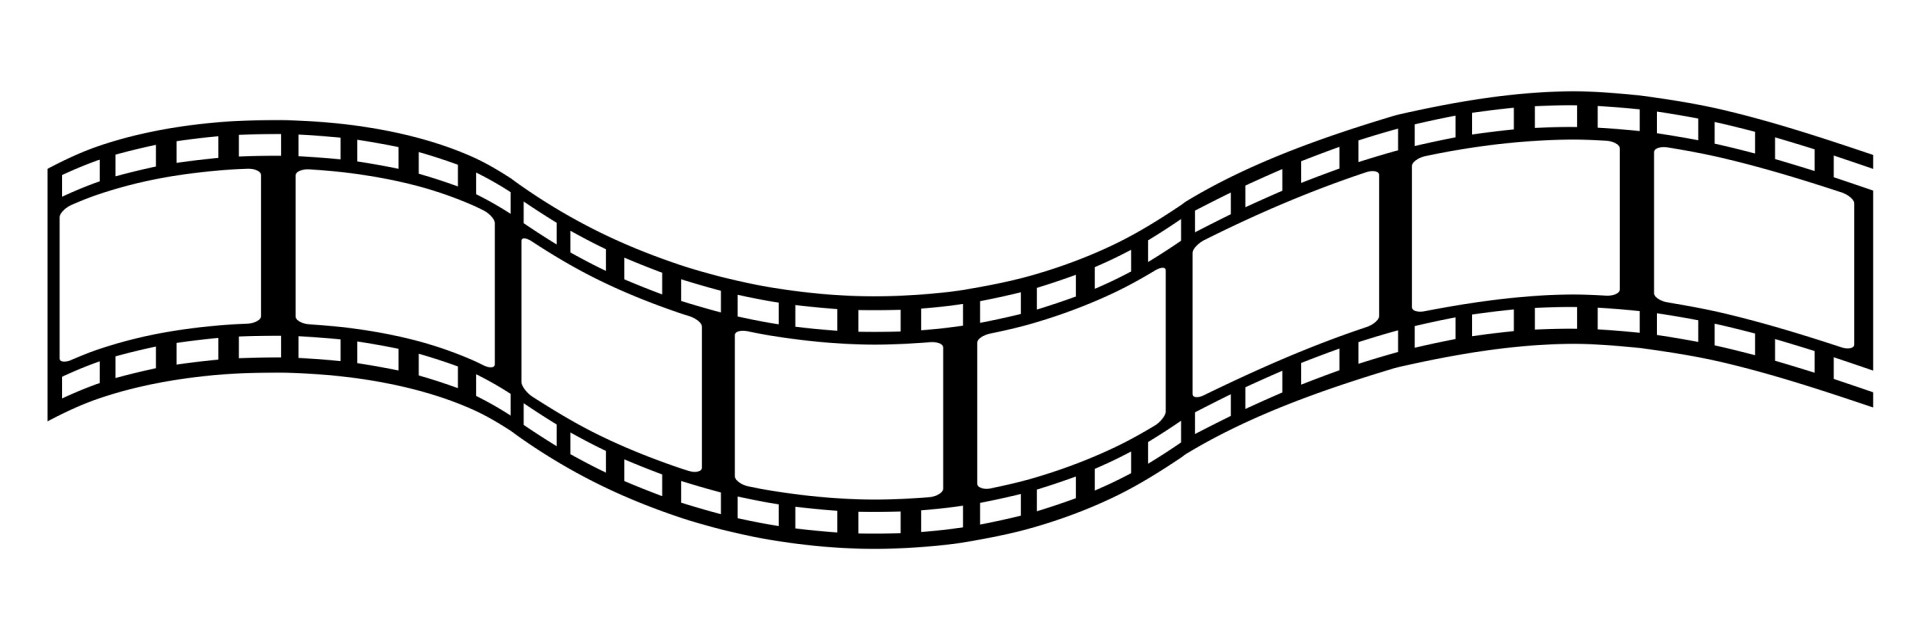 movie reel silhouette at getdrawings com free for personal use rh getdrawings com clipart film reel free clipart film reel